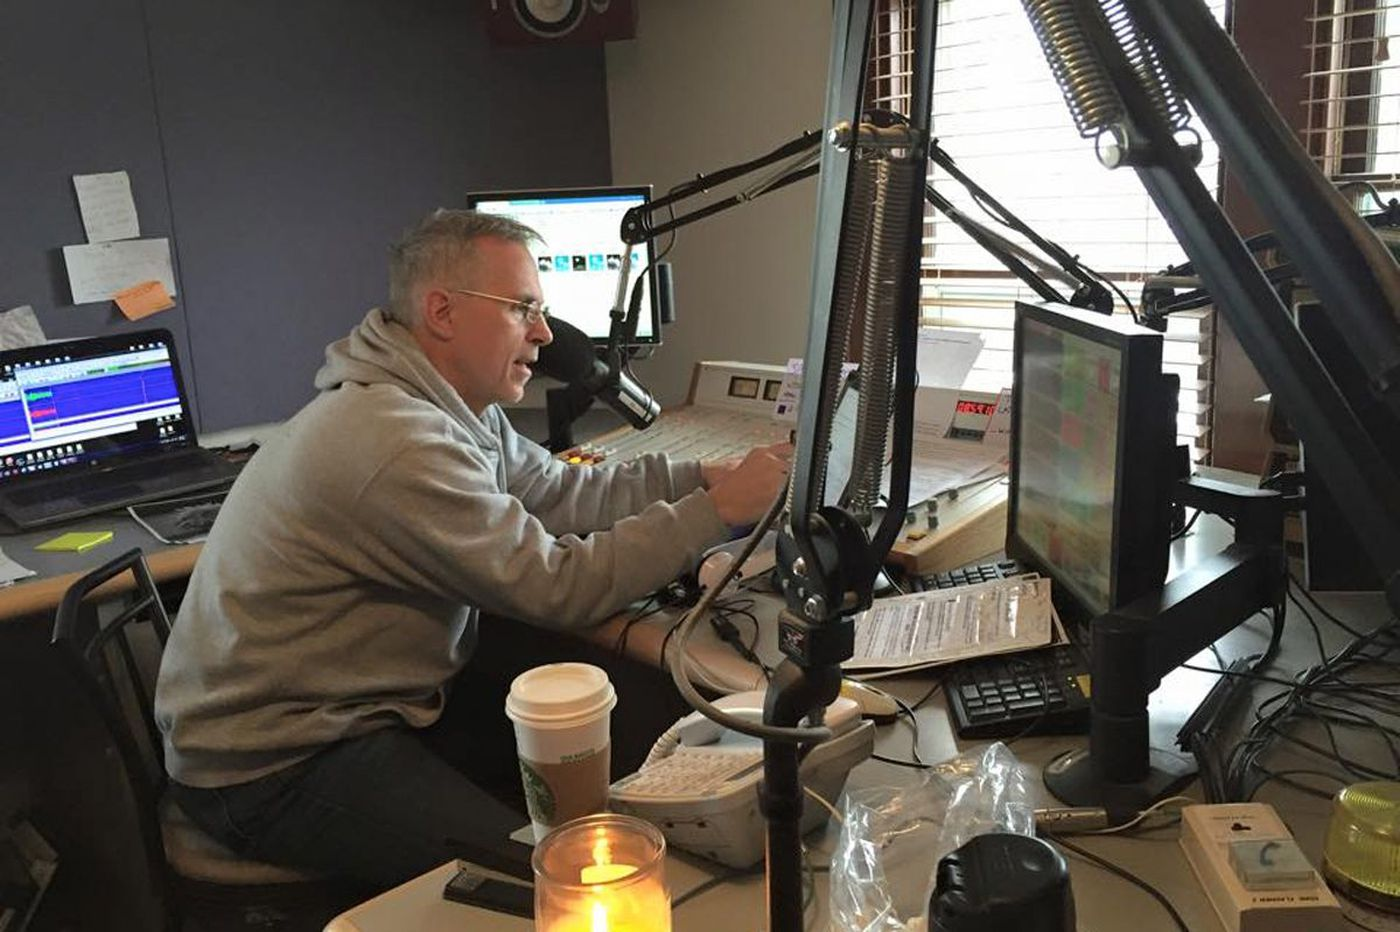 Pa. radio host out after being told he couldn't criticize Trump